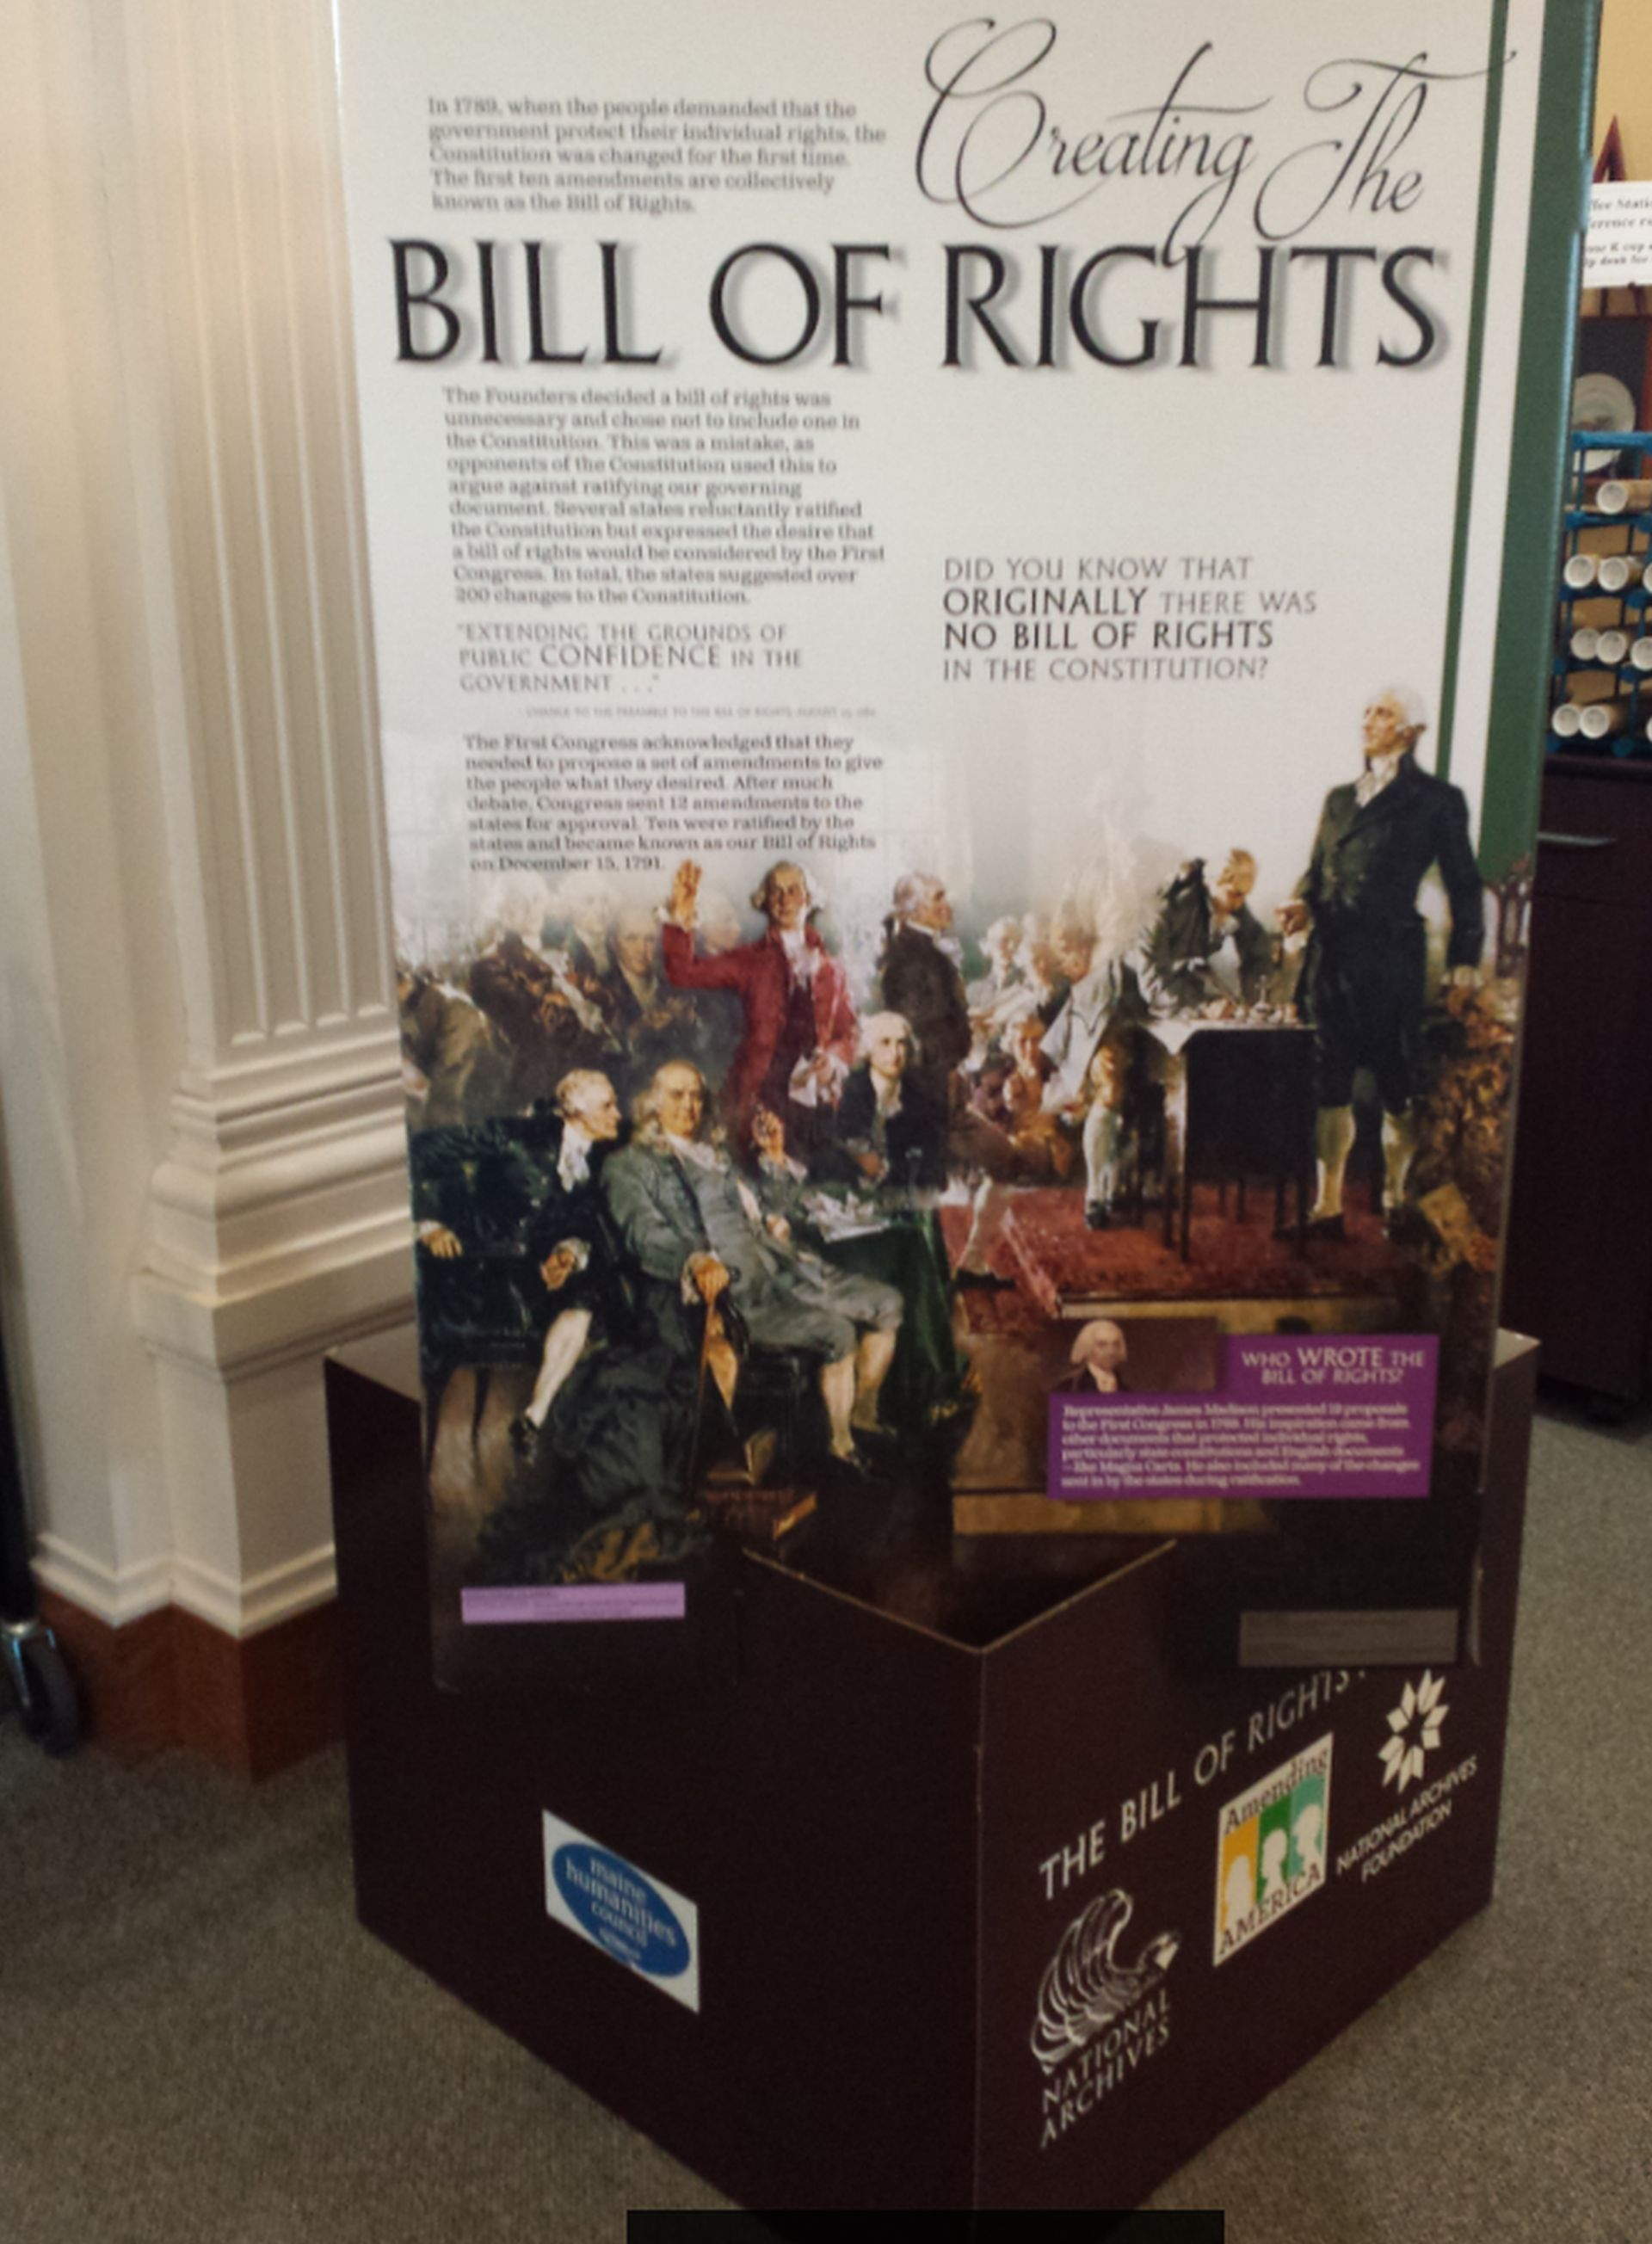 A new pop-up exhibition, The Bill of Rights and You, runs through Jan. 31 at the Kennebunk Free Library and commemorates the 225th anniversary of the ratification of the landmark document. SUBMITTED PHOTO